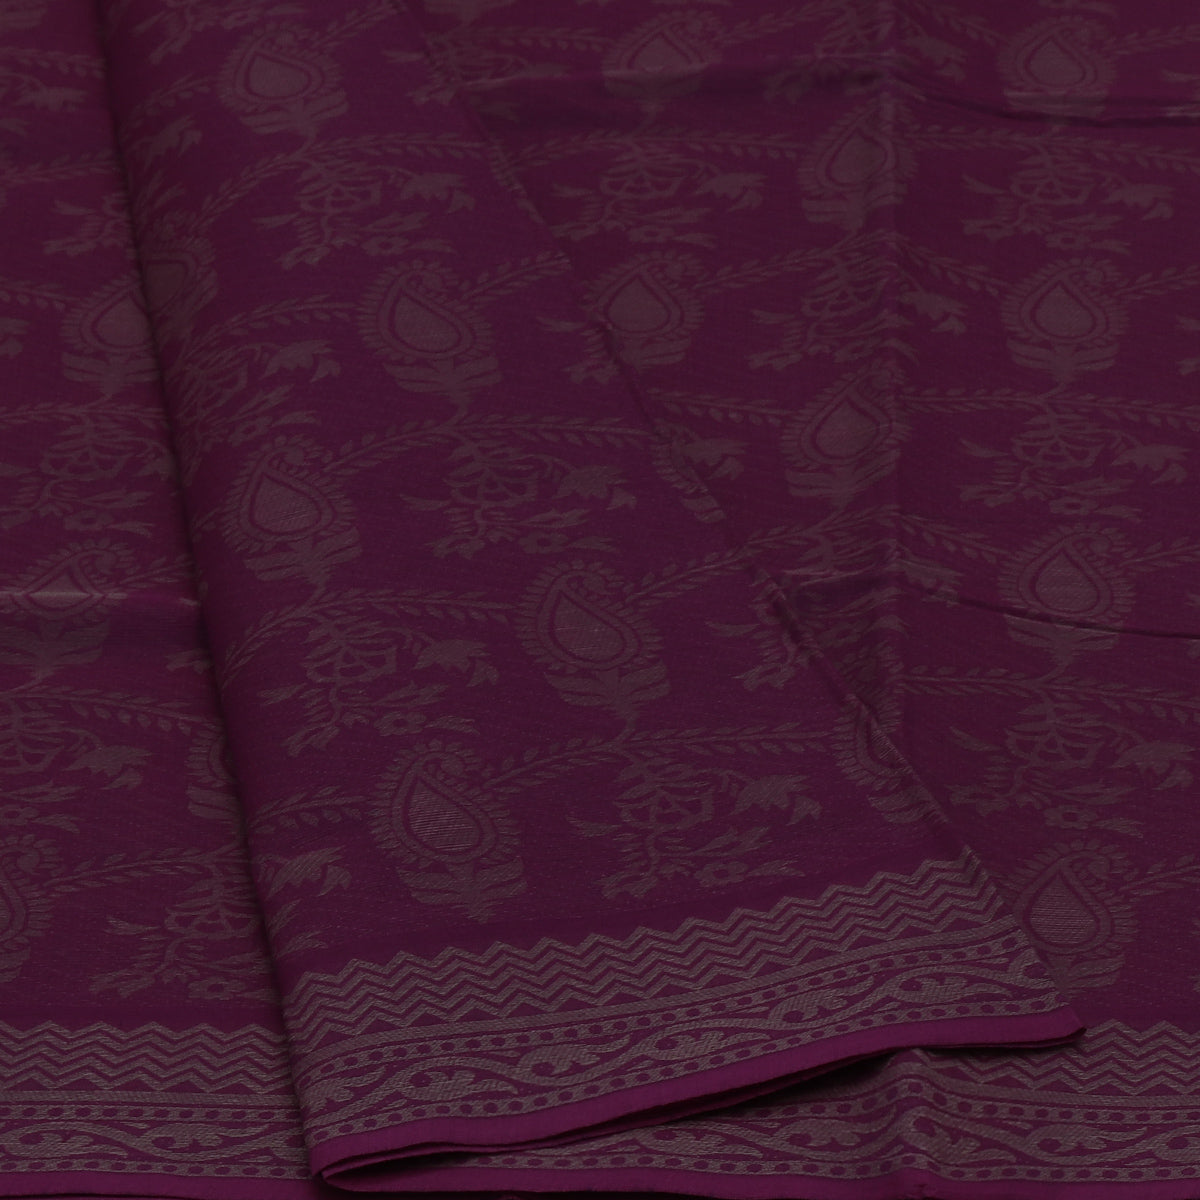 Coimbatore Cotton Saree Violet with Floral border